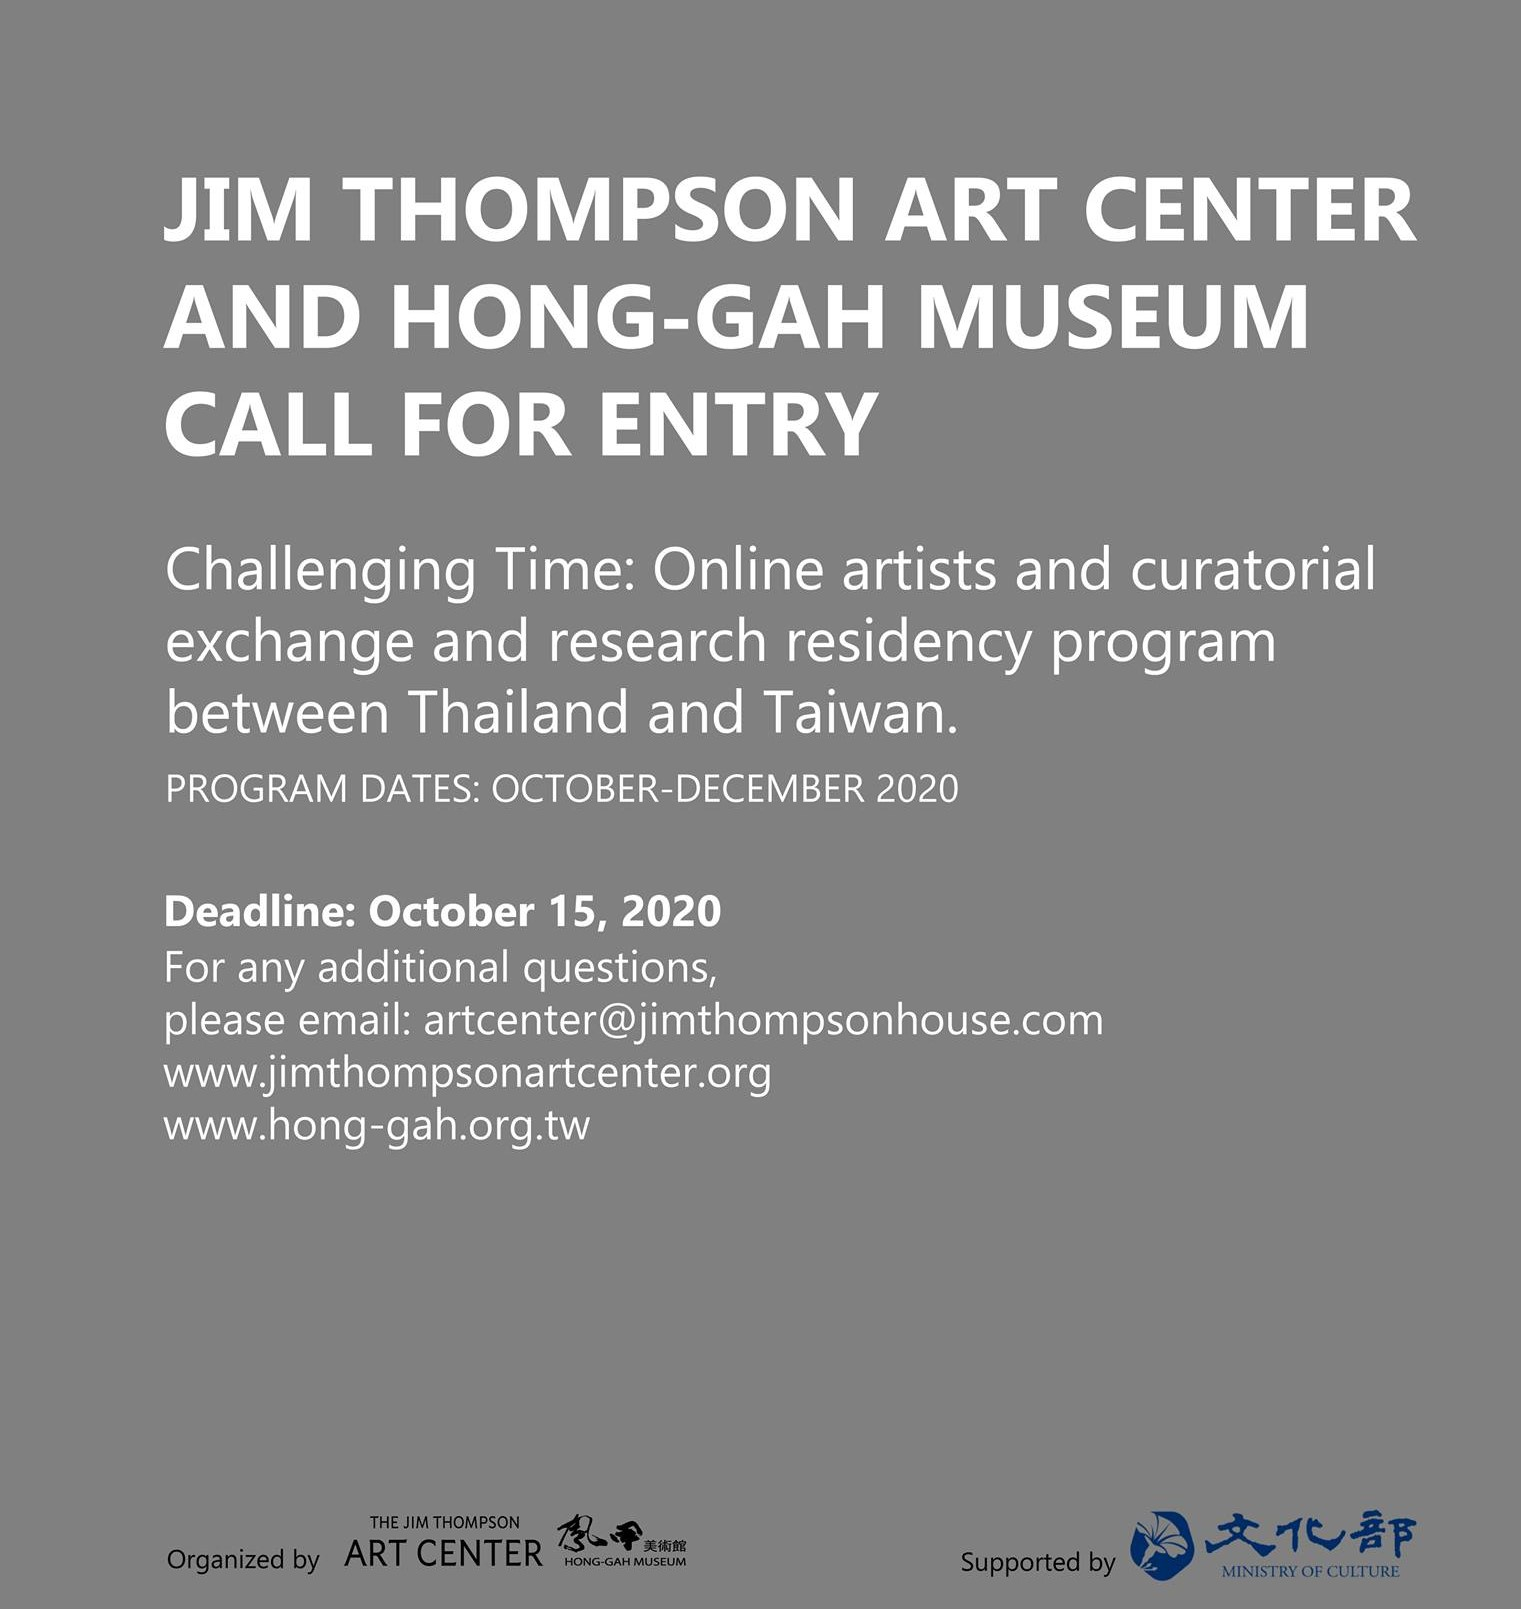 Jim Thompson Art Center Challenging Time: Online Exchange and Research Residency Program between Thailand and Taiwan